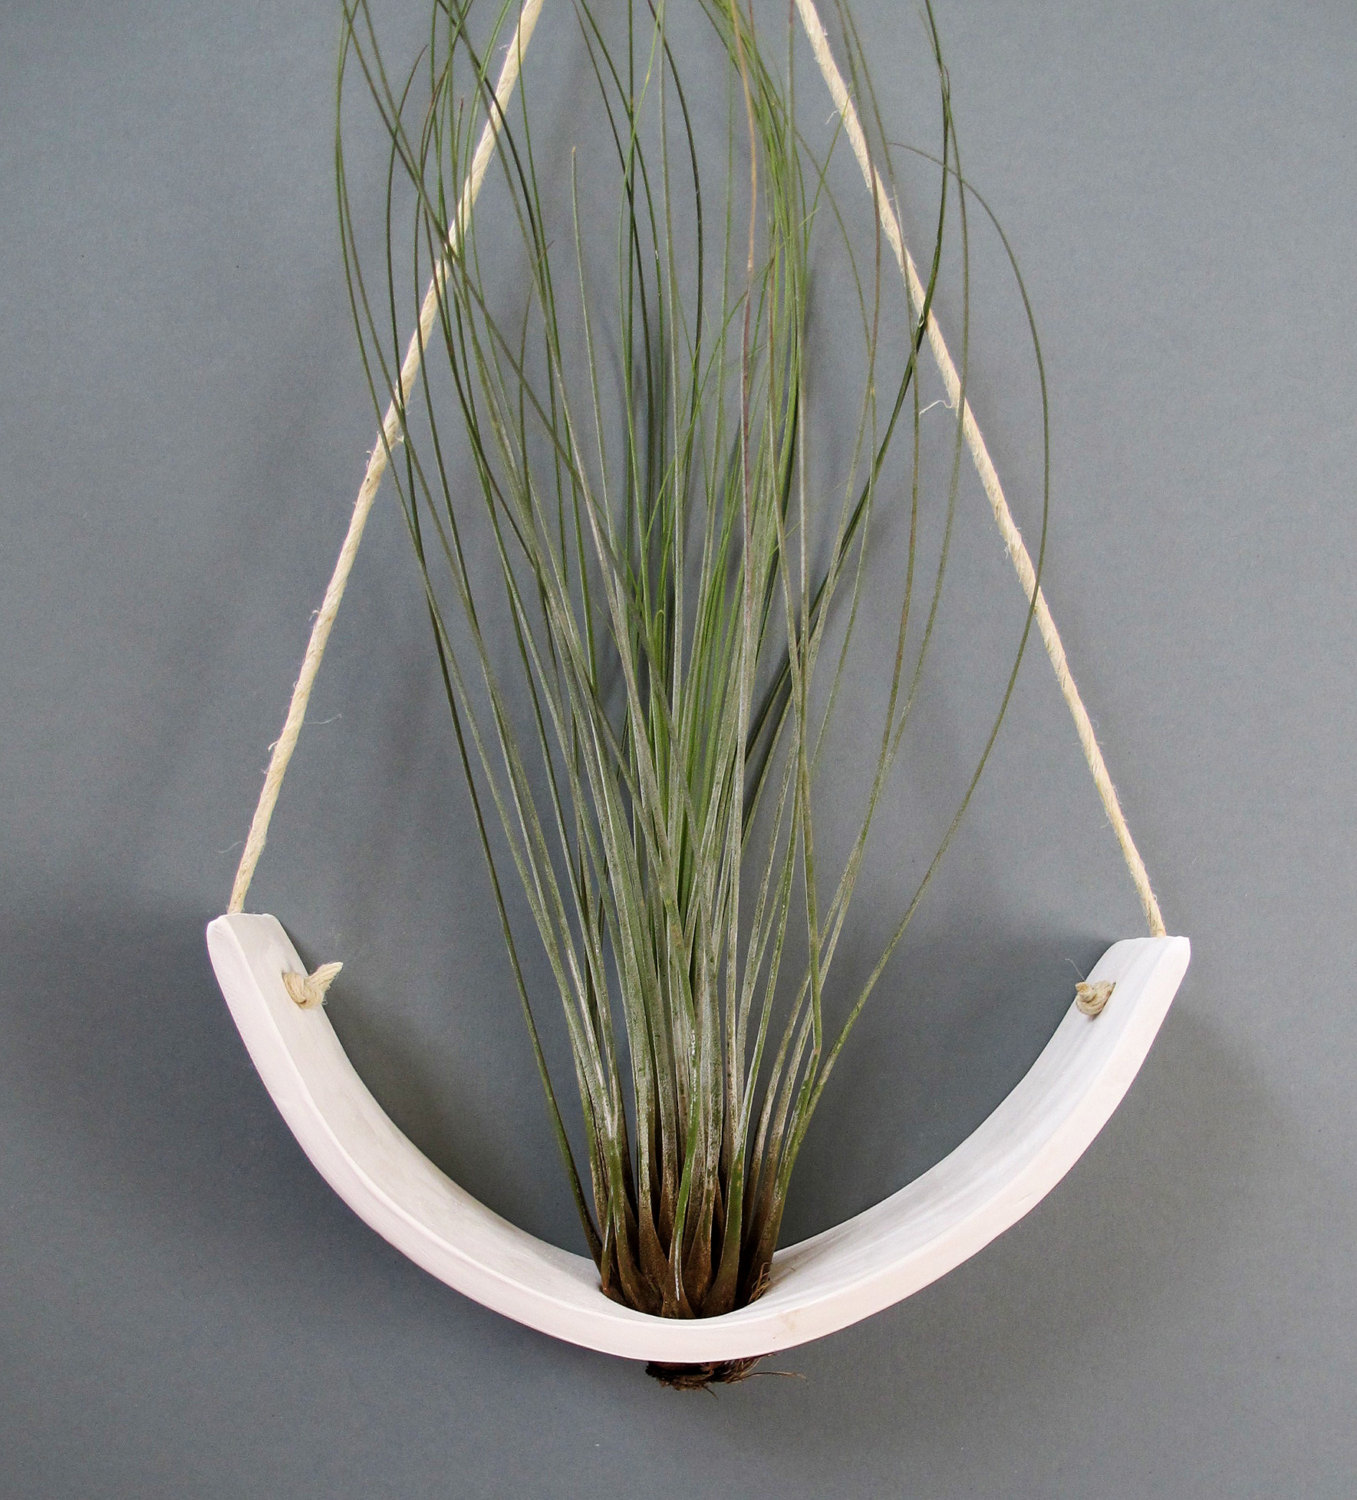 Air Plant Display How To Care For Air Plants